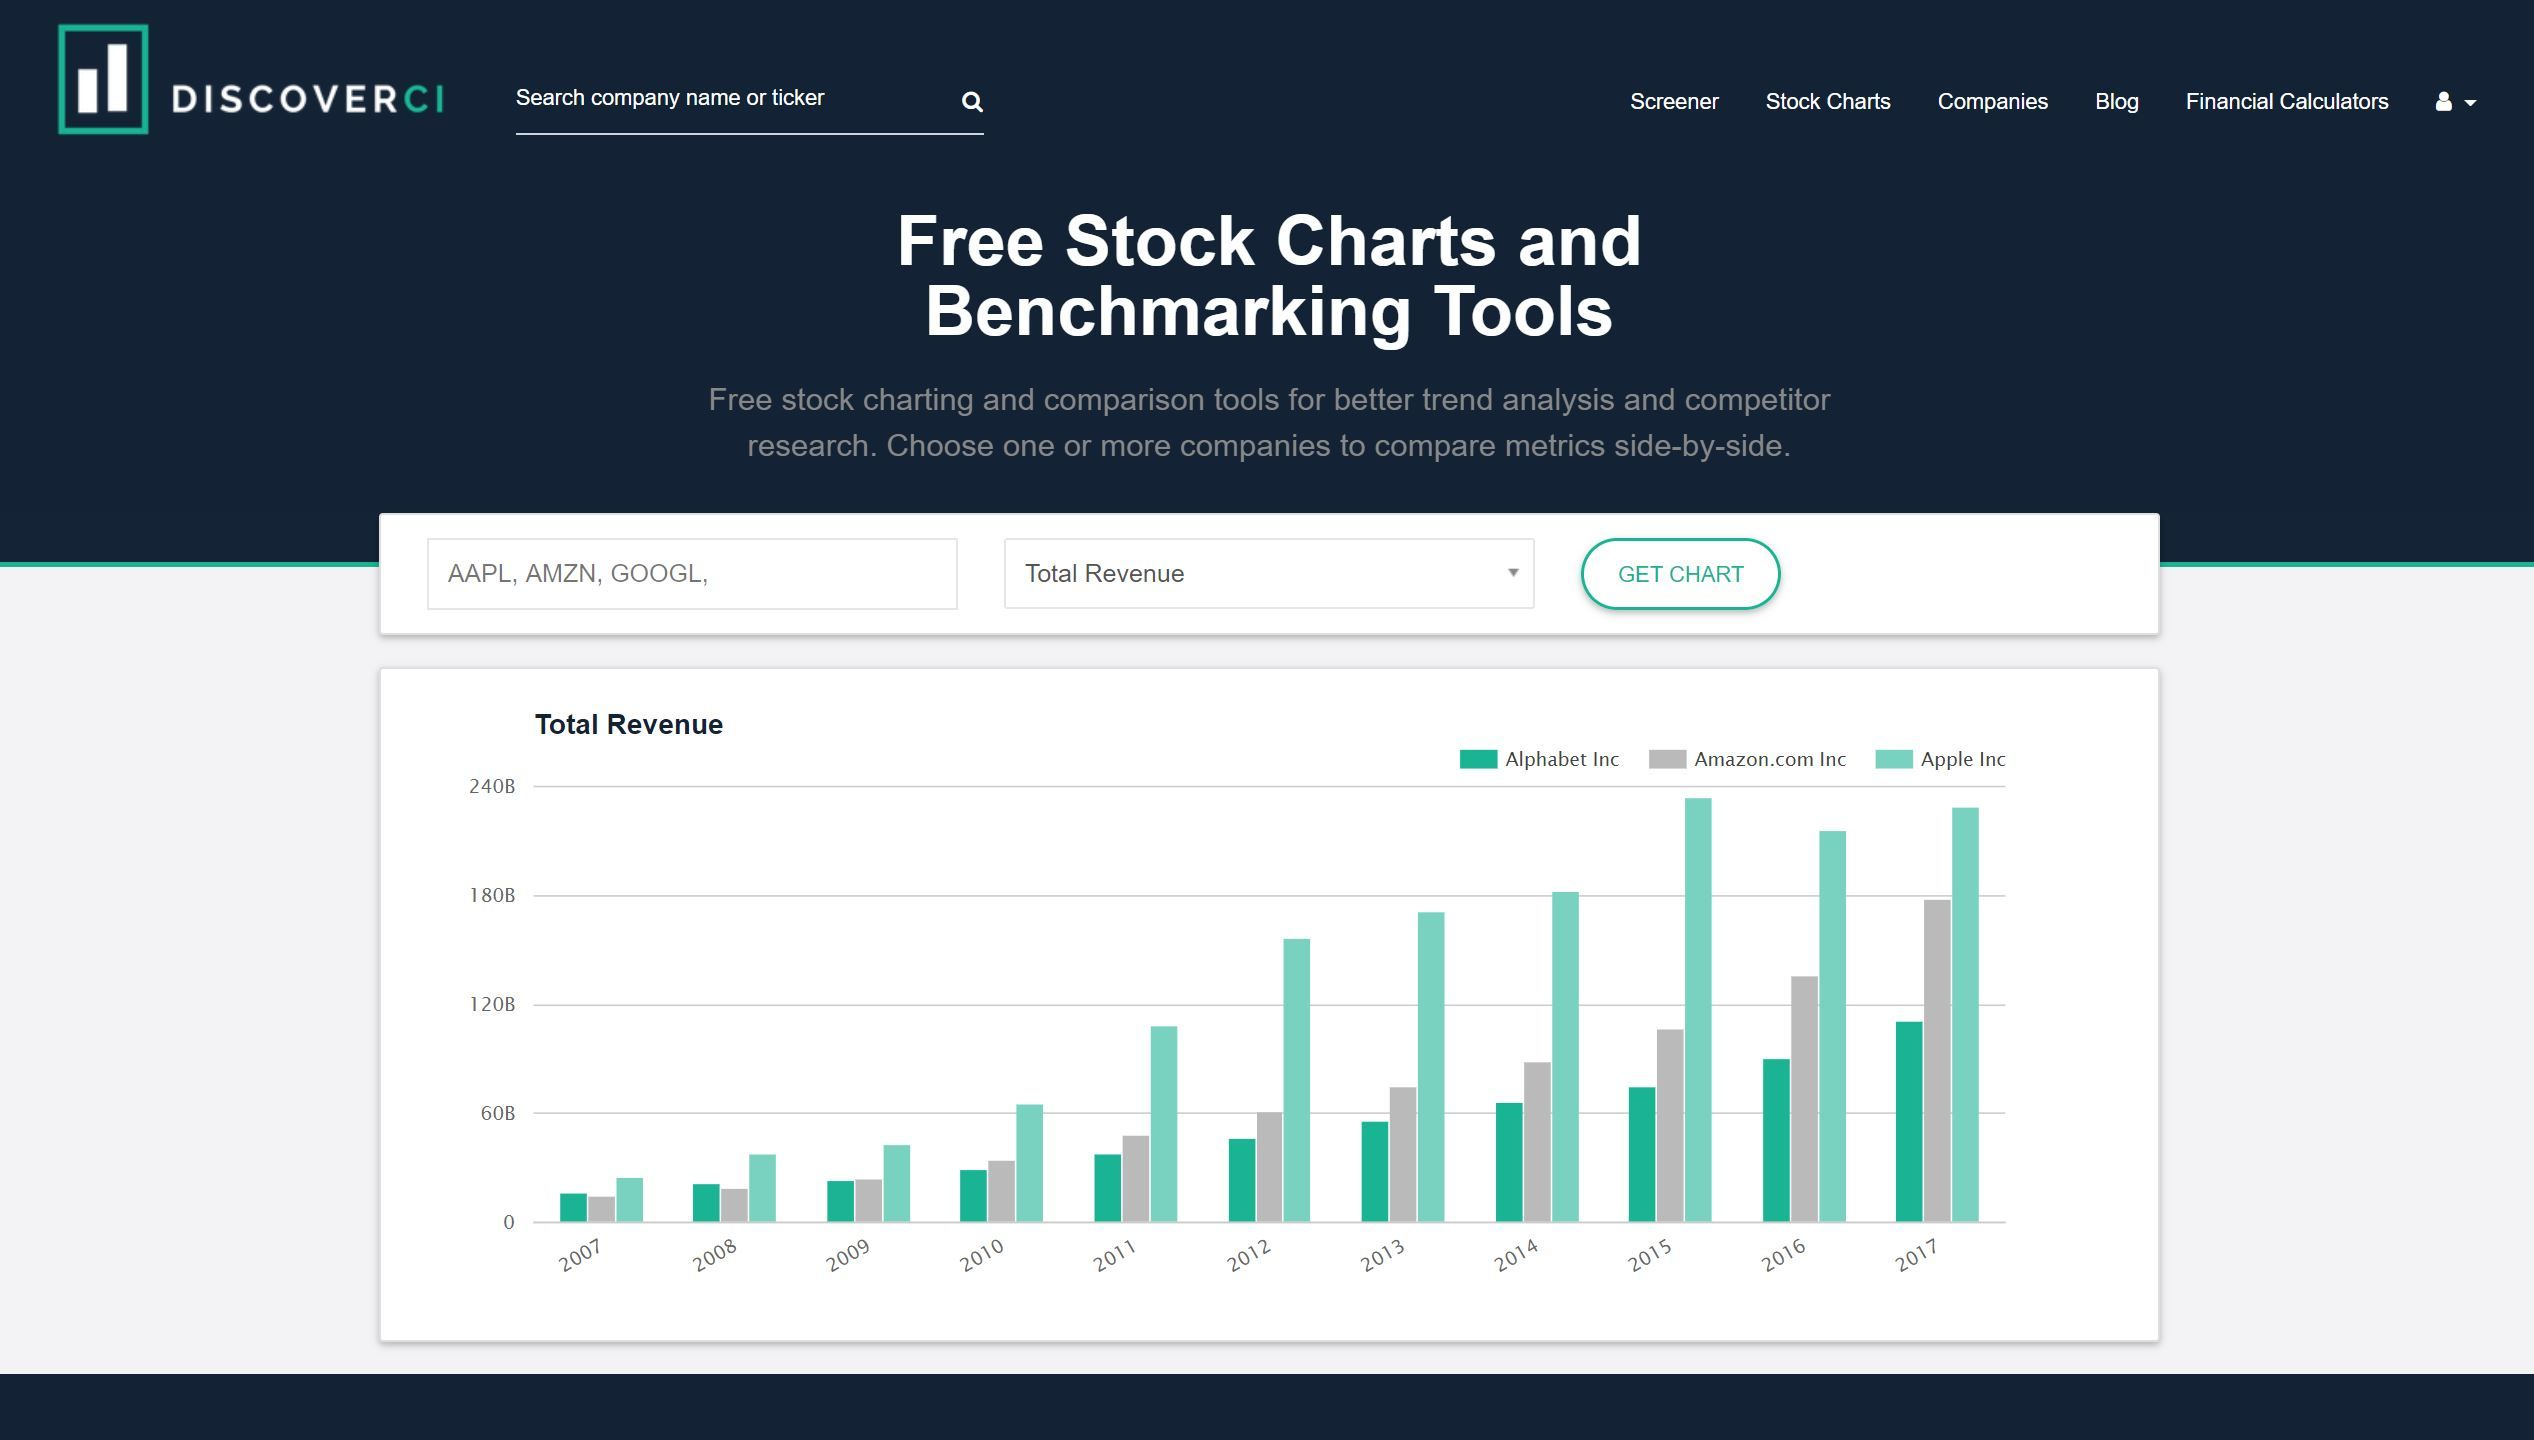 Free stock charting and benchmarking tools DiscoverCI